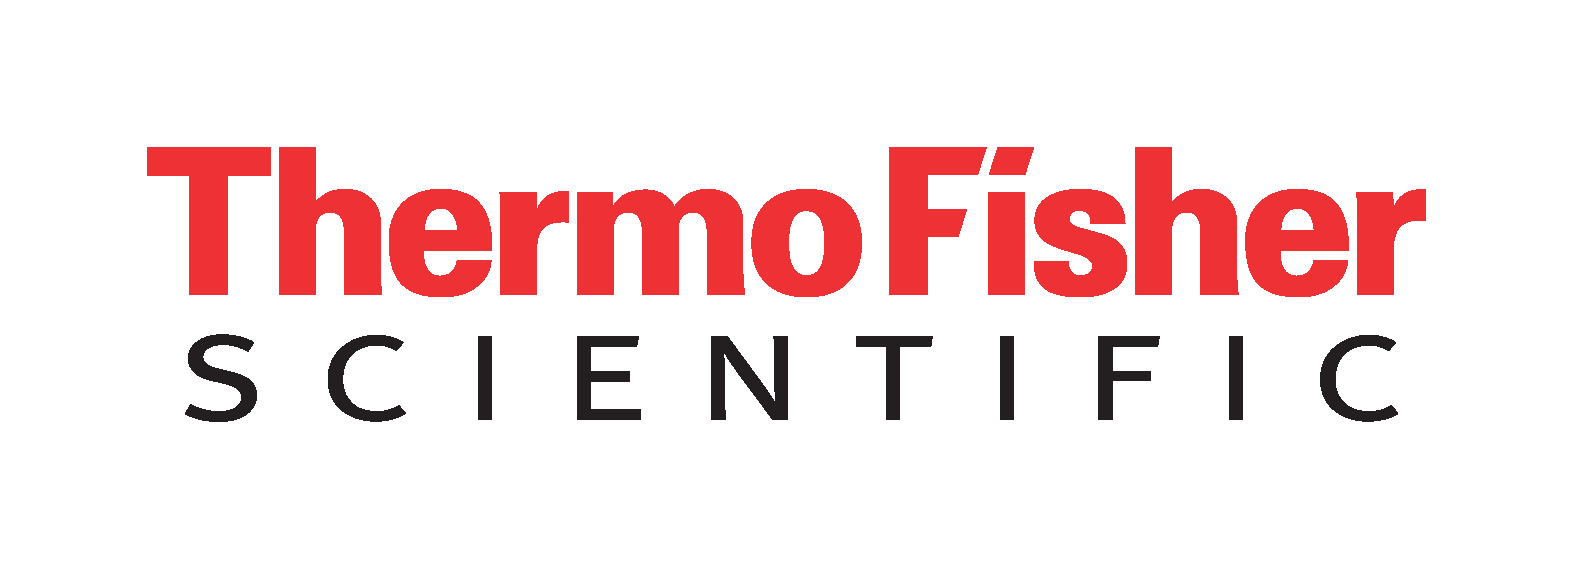 Thermo Fisher Scientific_logo_rgb_ez bigger-01.png